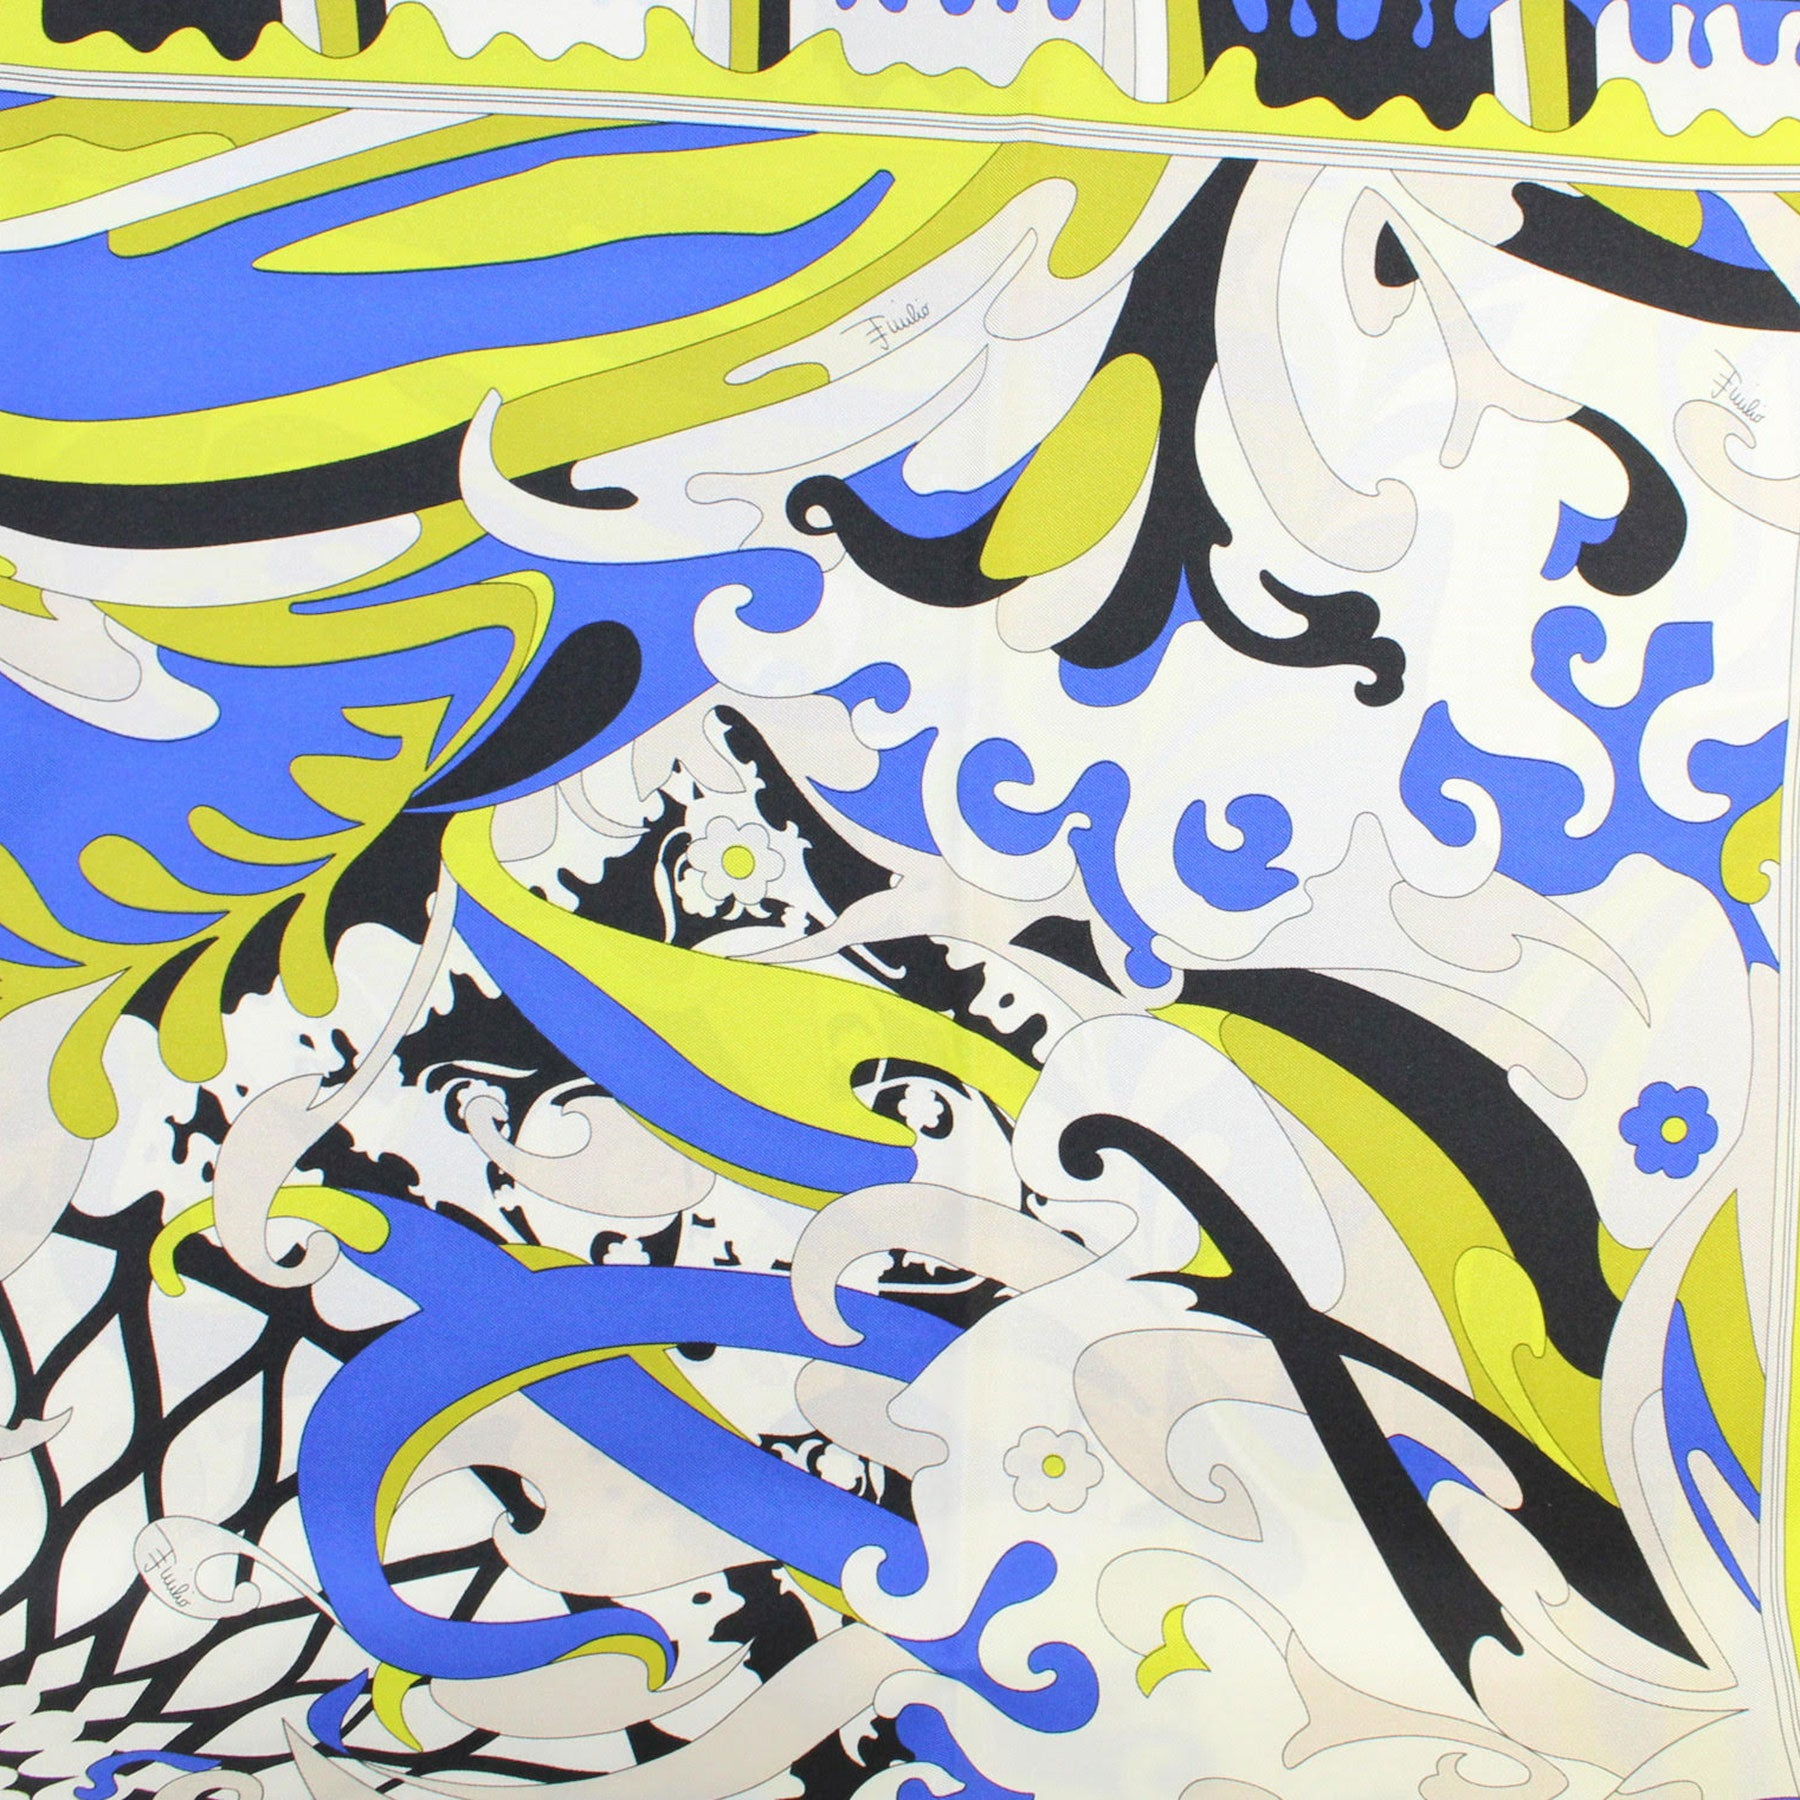 Emilio Pucci Silk Scarf Blue Yellow Black Ornamental Design - Large Twill Silk Square Scarf